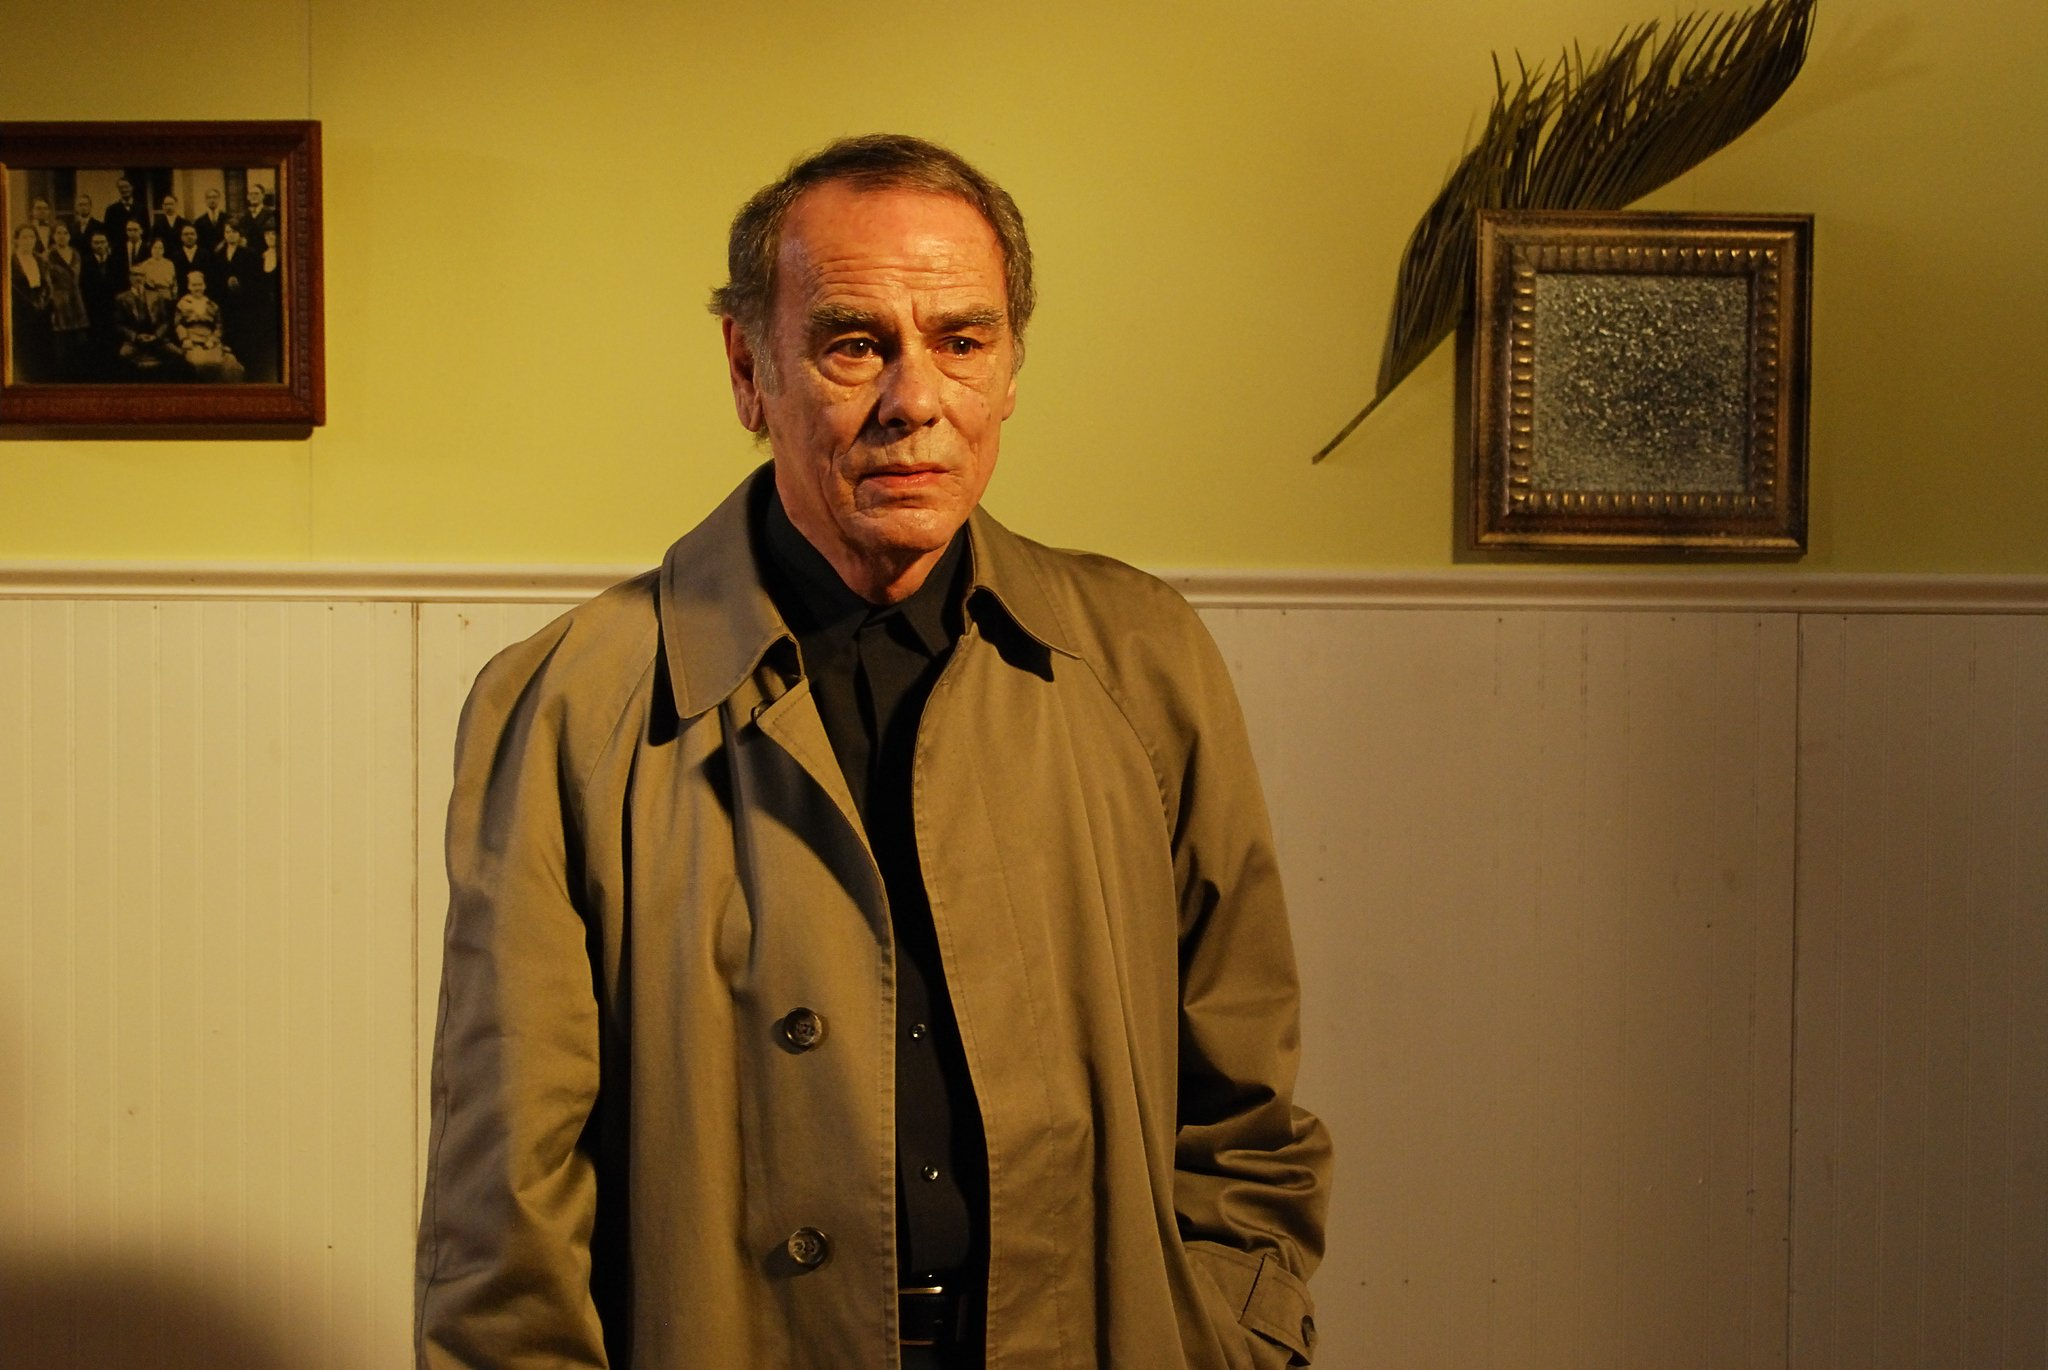 Dean Stockwell as occult expert Dr Armitage in The Dunwich Horror (2009)